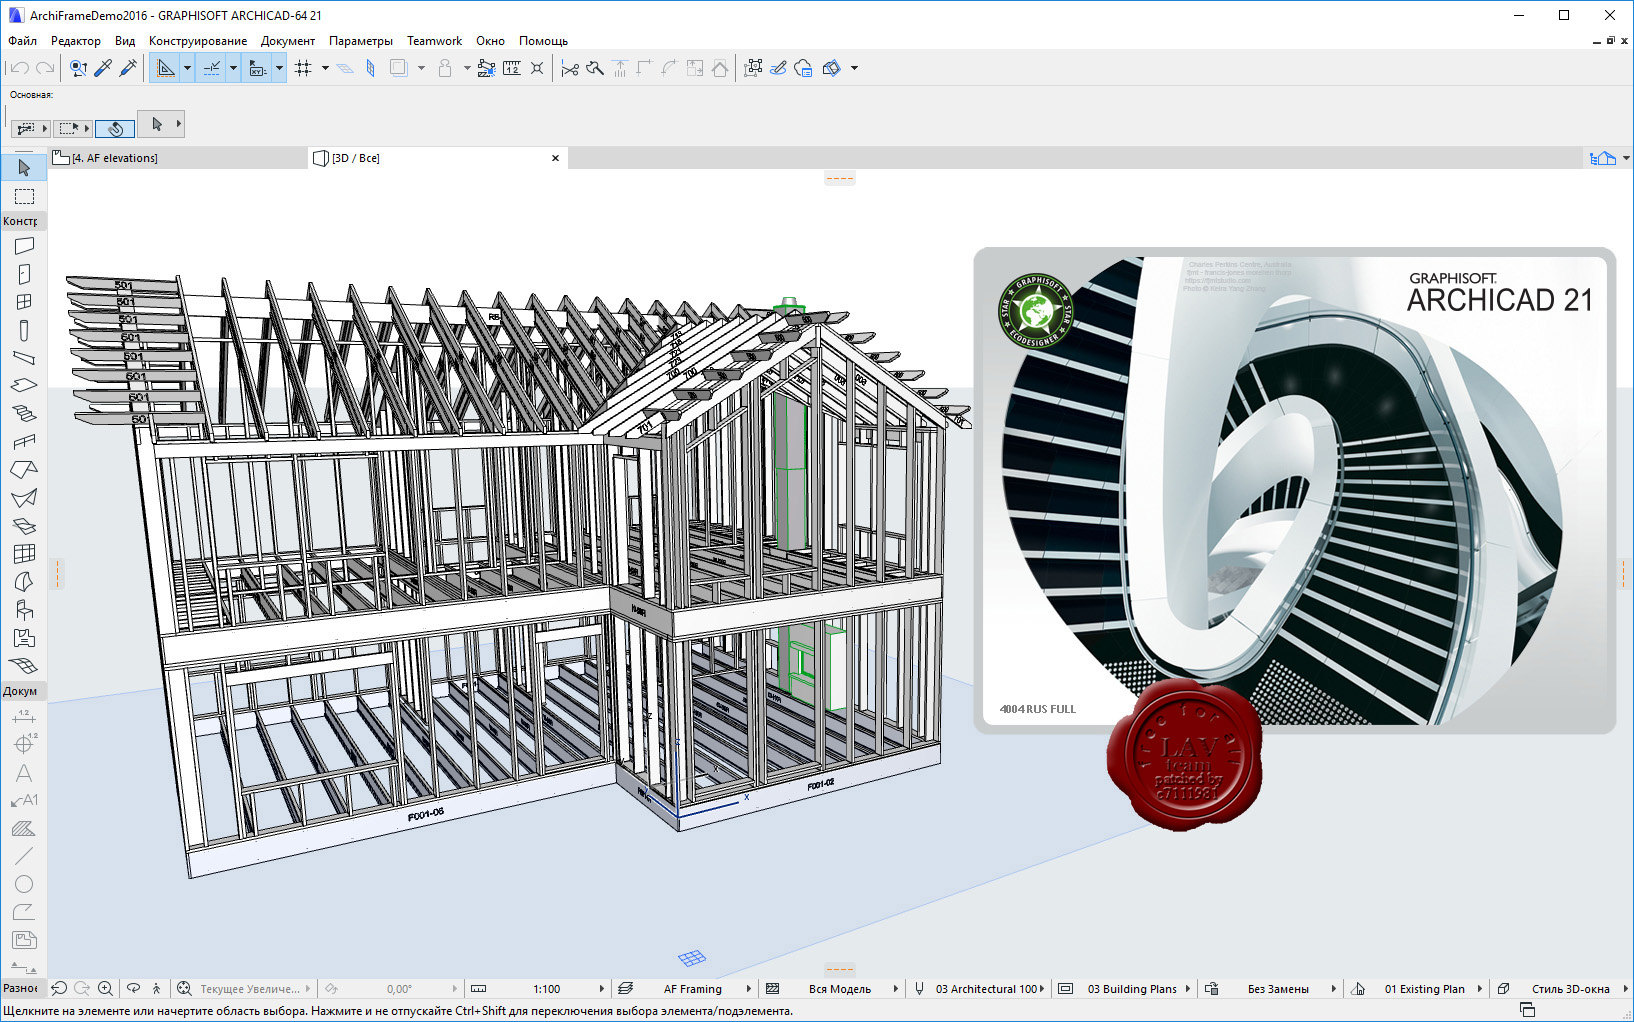 Graphisoft archicad 13